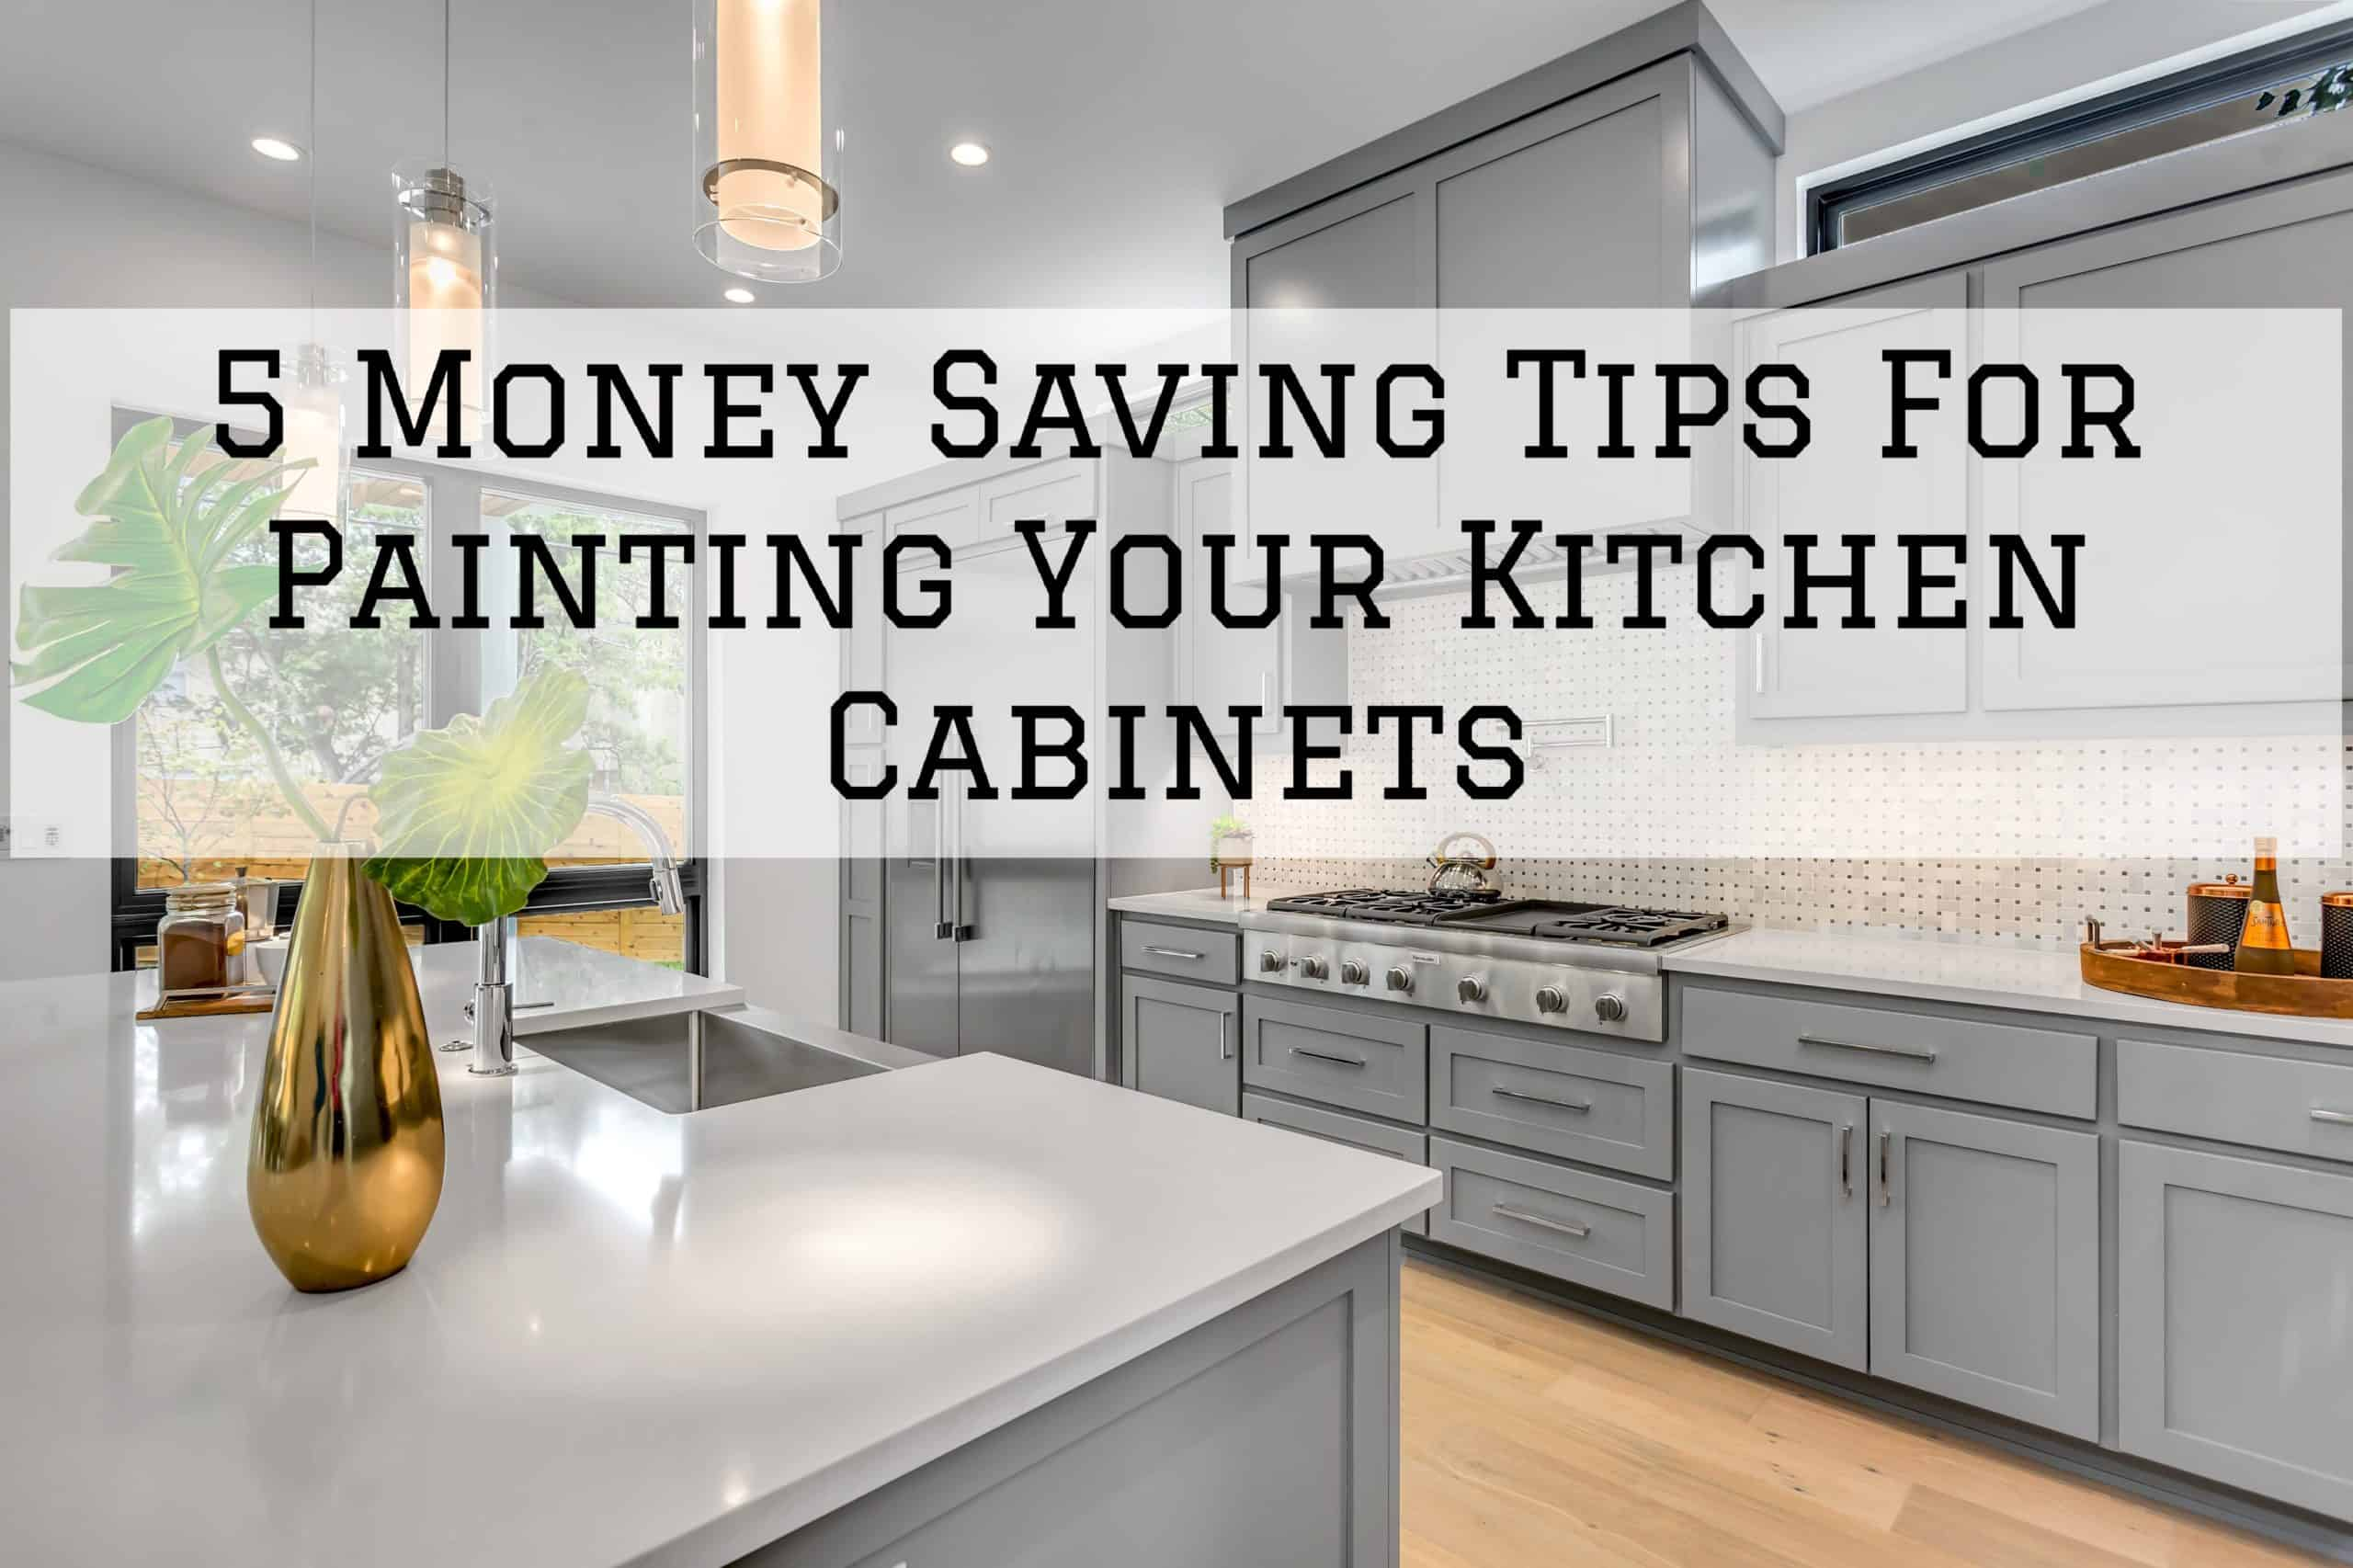 2020-08-03 Brush And Roll Painting Omaha NE Money Saving Kitchen Cabinet Tips